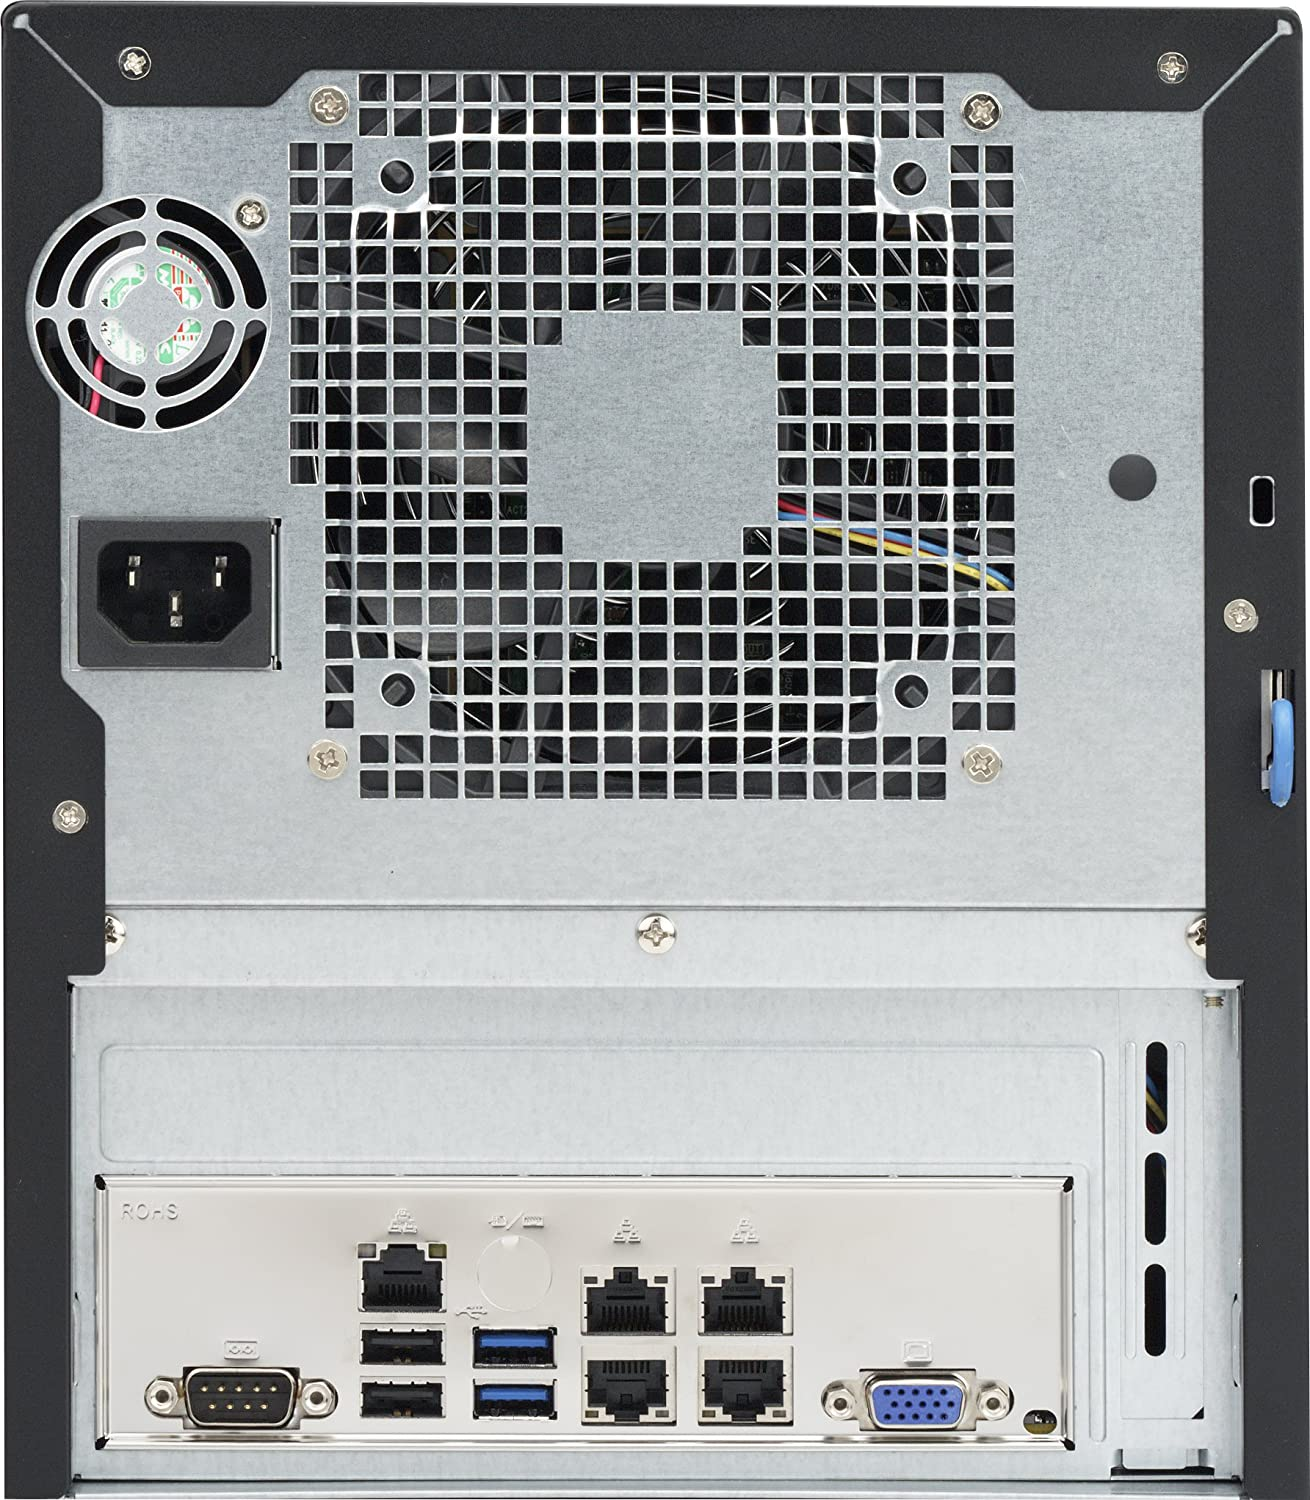 Supermicro Superchassis CSE-721TQ-250B Mini-Tower with 250W Power Supply